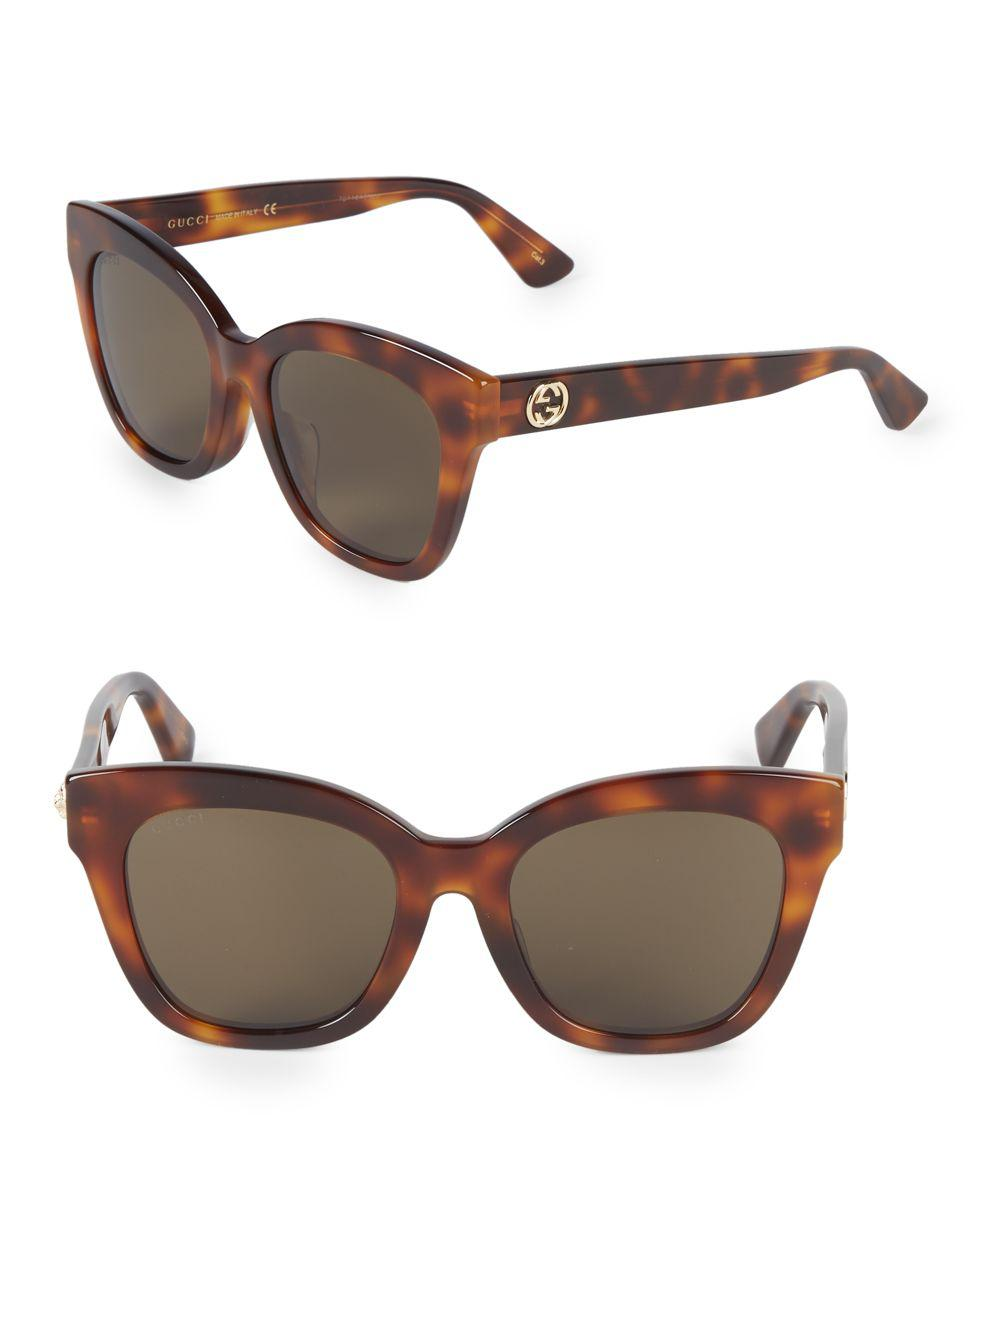 4df152a53ea32 Gucci 52mm Square Sunglasses in Brown - Lyst